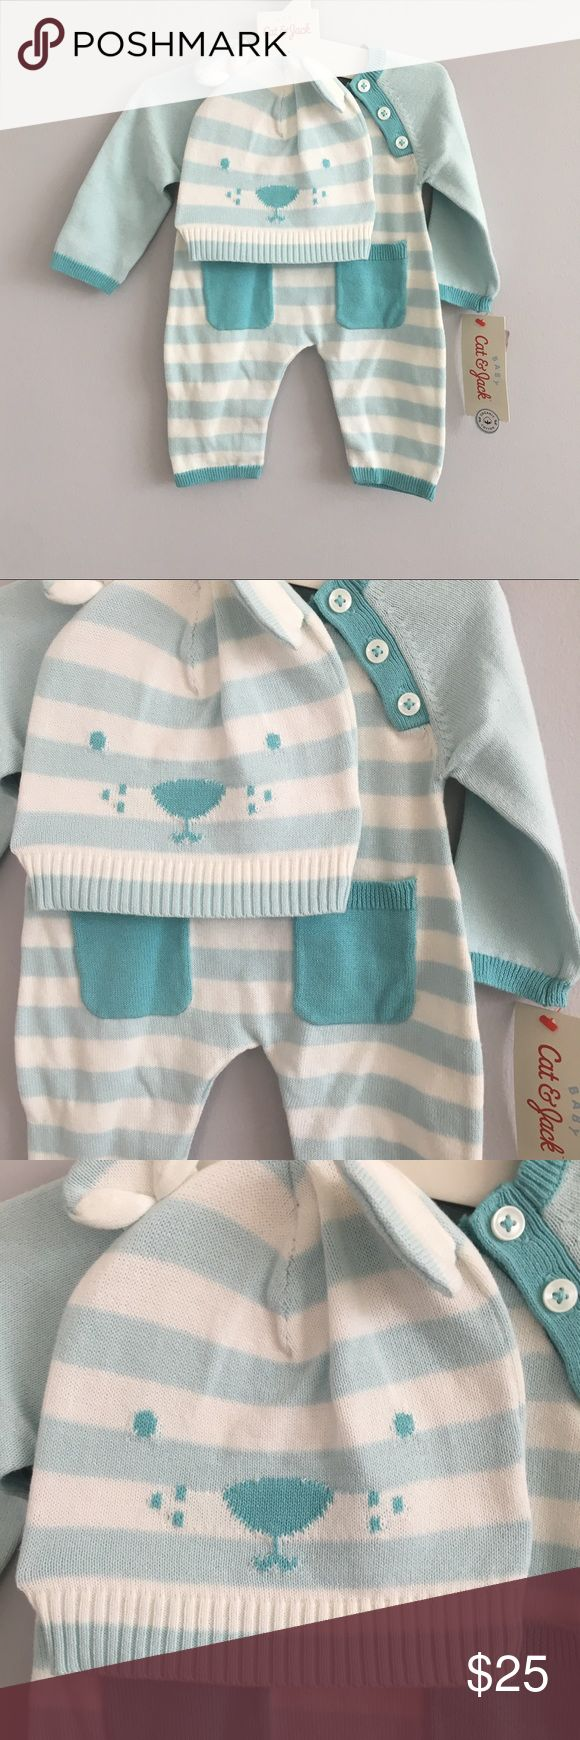 Cat & Jack blue and cream bear onesie and hat set Cream and blue striped pants and long sleeve striped onesie. Has cute pockets on the front. Comes with a matching bear hat.  🍂🍁🍂🍁🍂🍁🍂🍁🍂🍁🍂🍁🍂🍁🍂 Size: fits true to size  Feel free to ask questions! All offers will be considered! I ship within 3 days max! Bundle discount of 15%! Free coupon code for next purchase with each purchase from my closet! Free shipping on bundles over $69 after the bundle discount. Simply offer $7 less on…